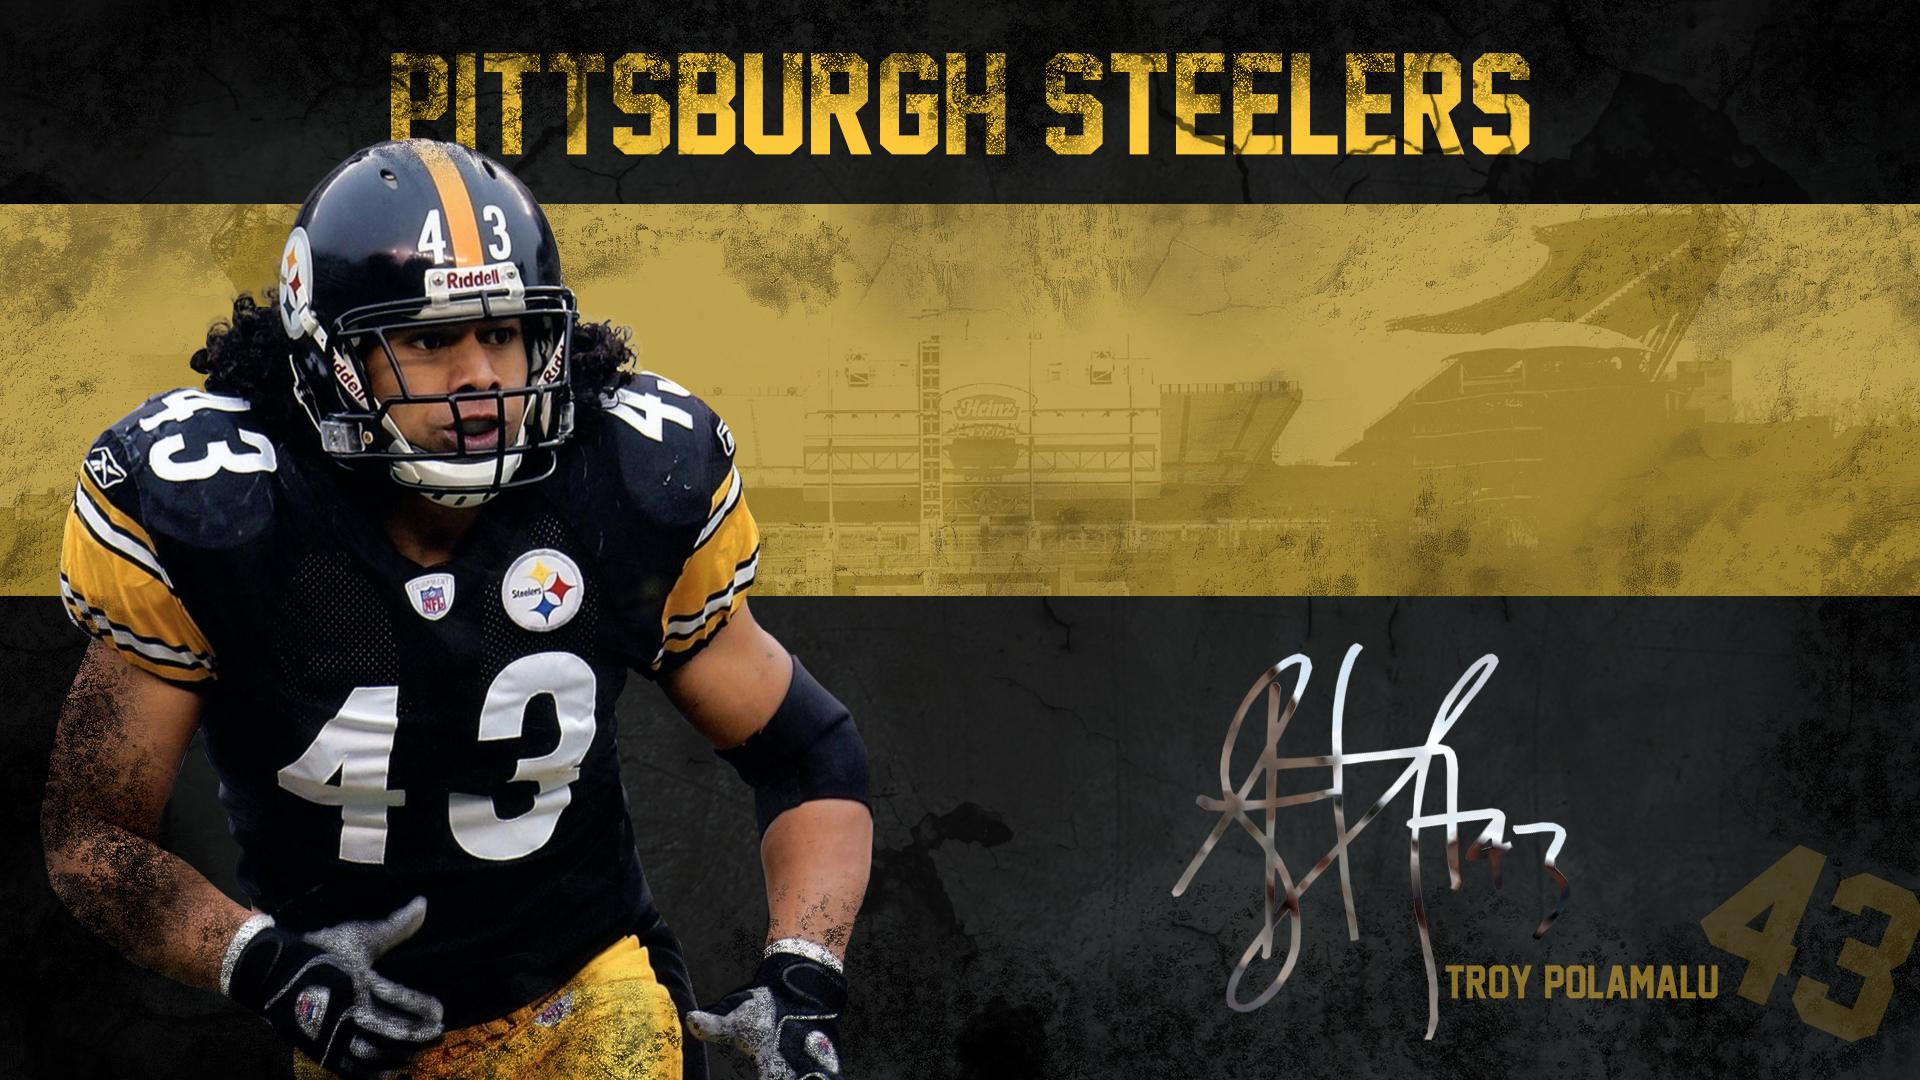 Pittsburgh Steelers Images Troy Polamalu Wallpaper HD And Background Photos